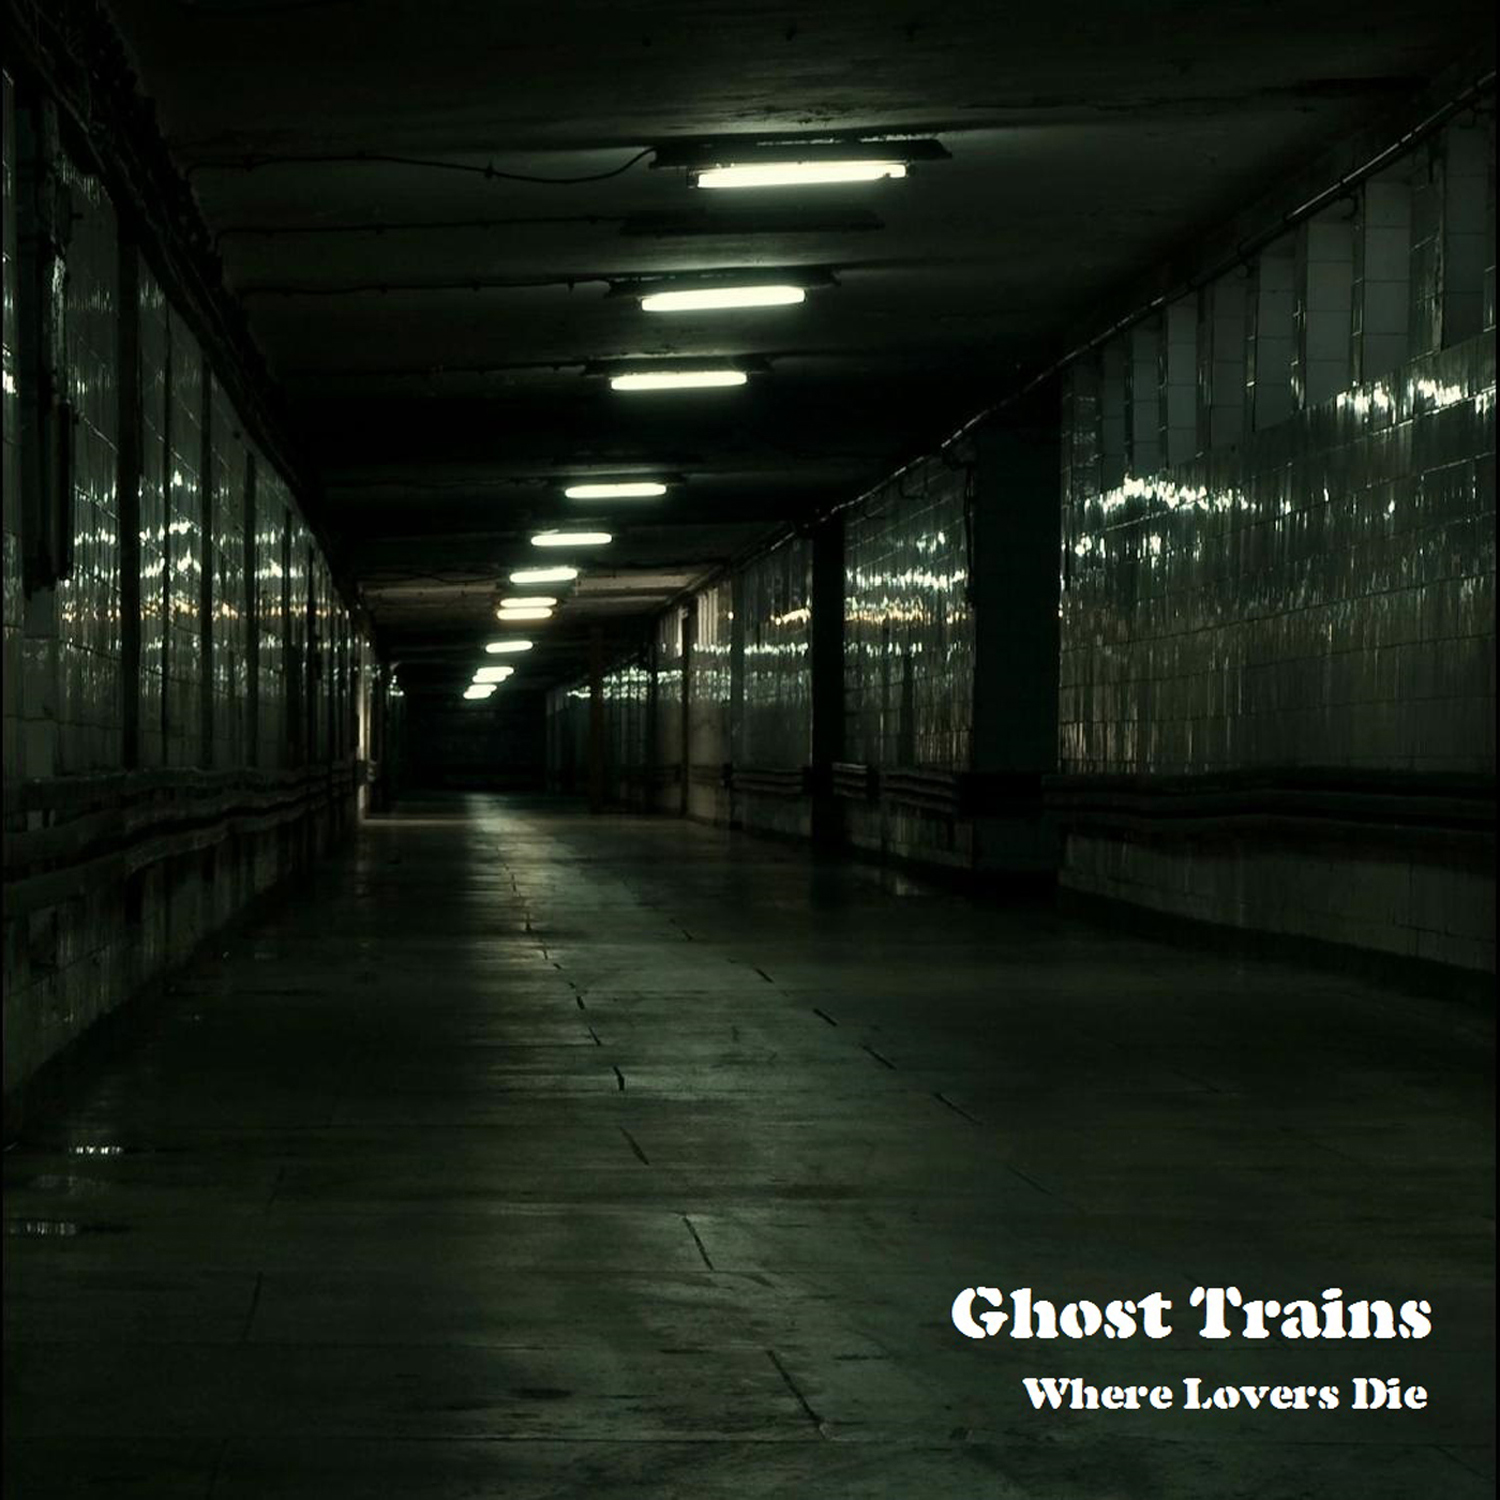 Where Lovers Die (Remastered) - Ghost Trains